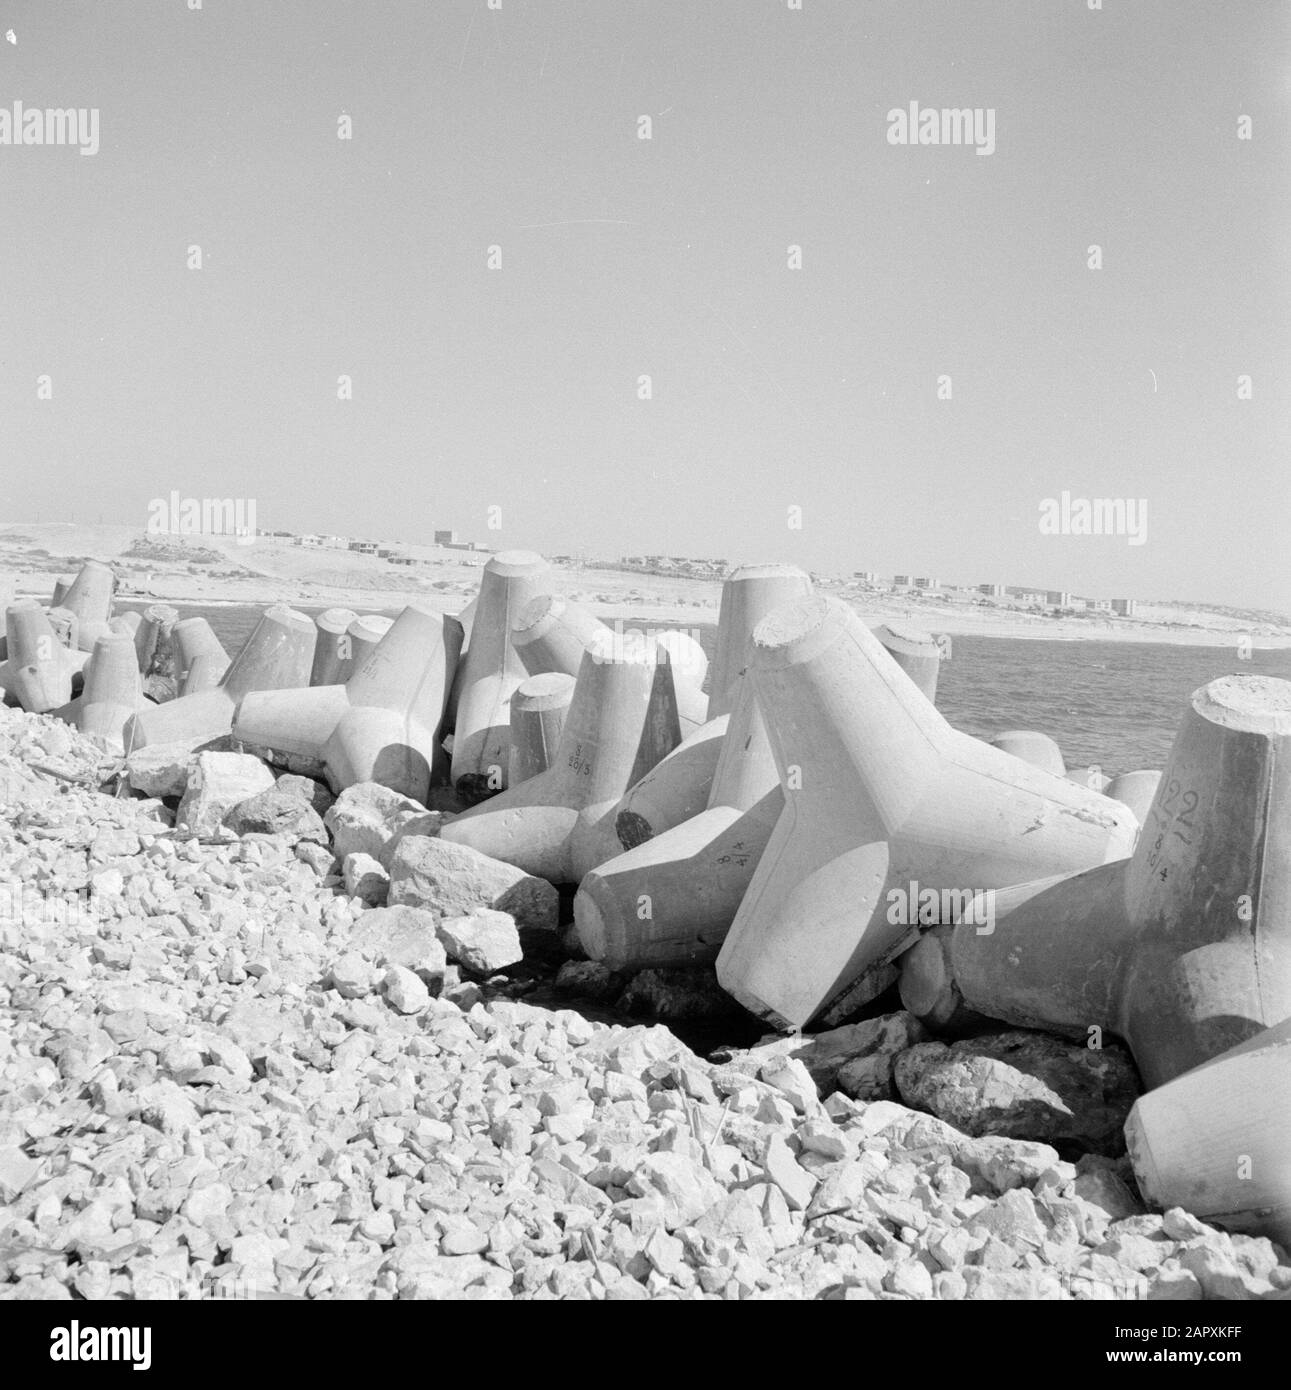 Israel 1964-1965: Ashdod, port building  Taud guards side by side of the water Annotation: Ashdod is a port town and seaside resort in western Israel, located on the Mediterranean Date : 1964 Location: Ashdod, Israel Keywords: Talud protectors, construction activities Stock Photo